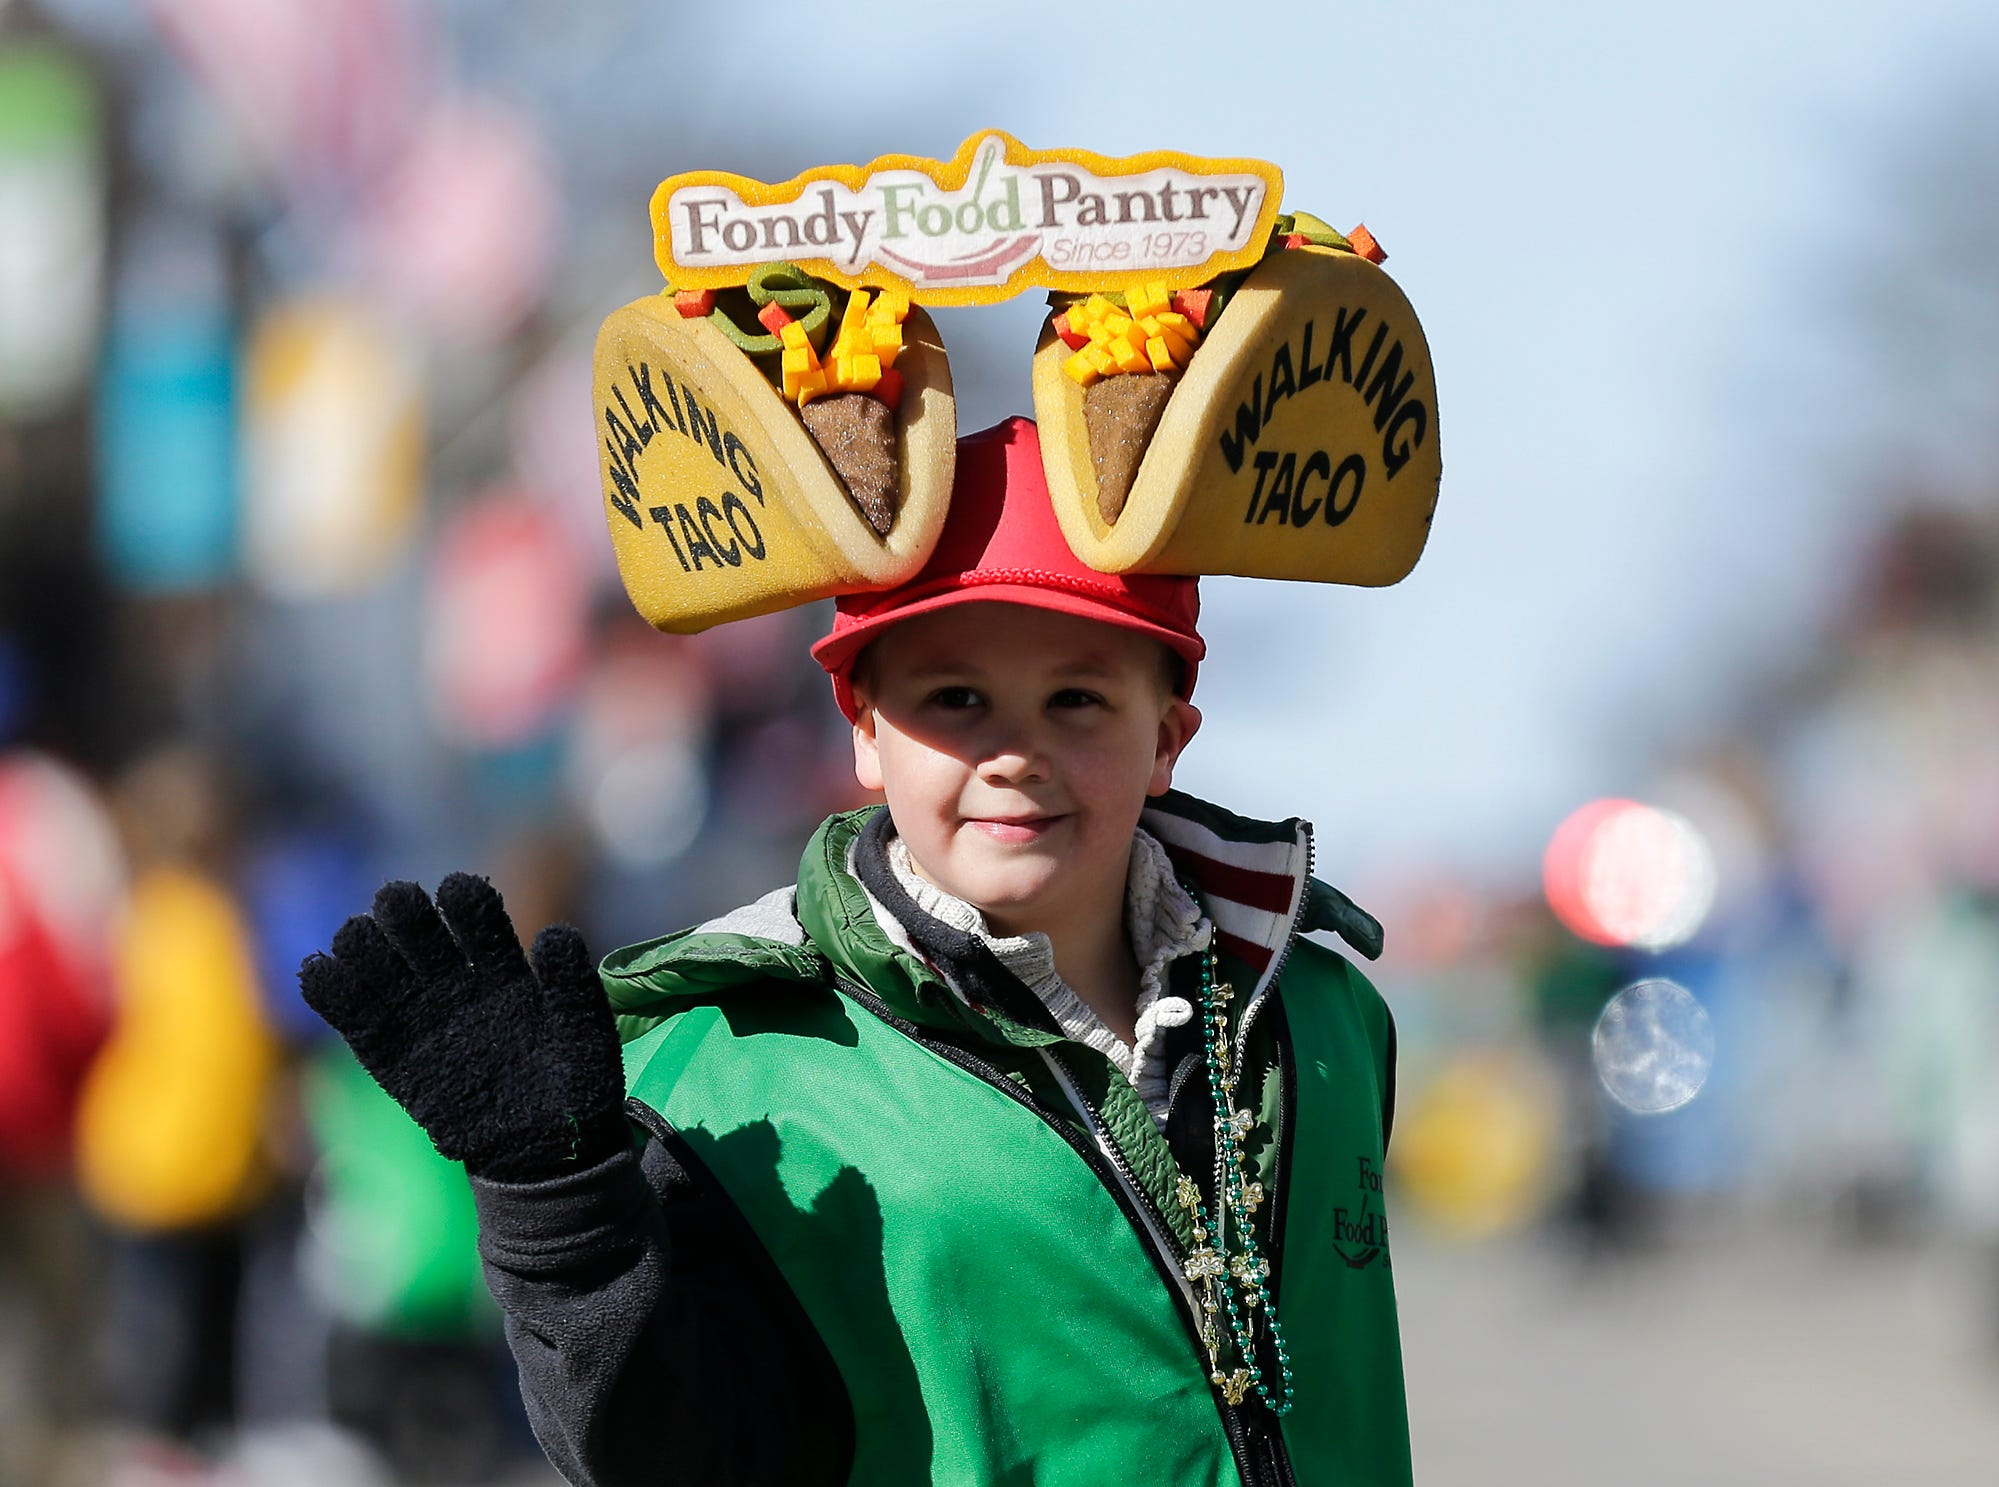 Kaden Olig waves to parade watchers as he walks in the City of Fond du Lac St. Patrick's Day Parade Saturday, March 16, 2019 on Main Street in downtown Fond du Lac. Hundreds of people lined the street to watch over 50 parade participants. Doug Raflik/USA TODAY NETWORK-Wisconsin